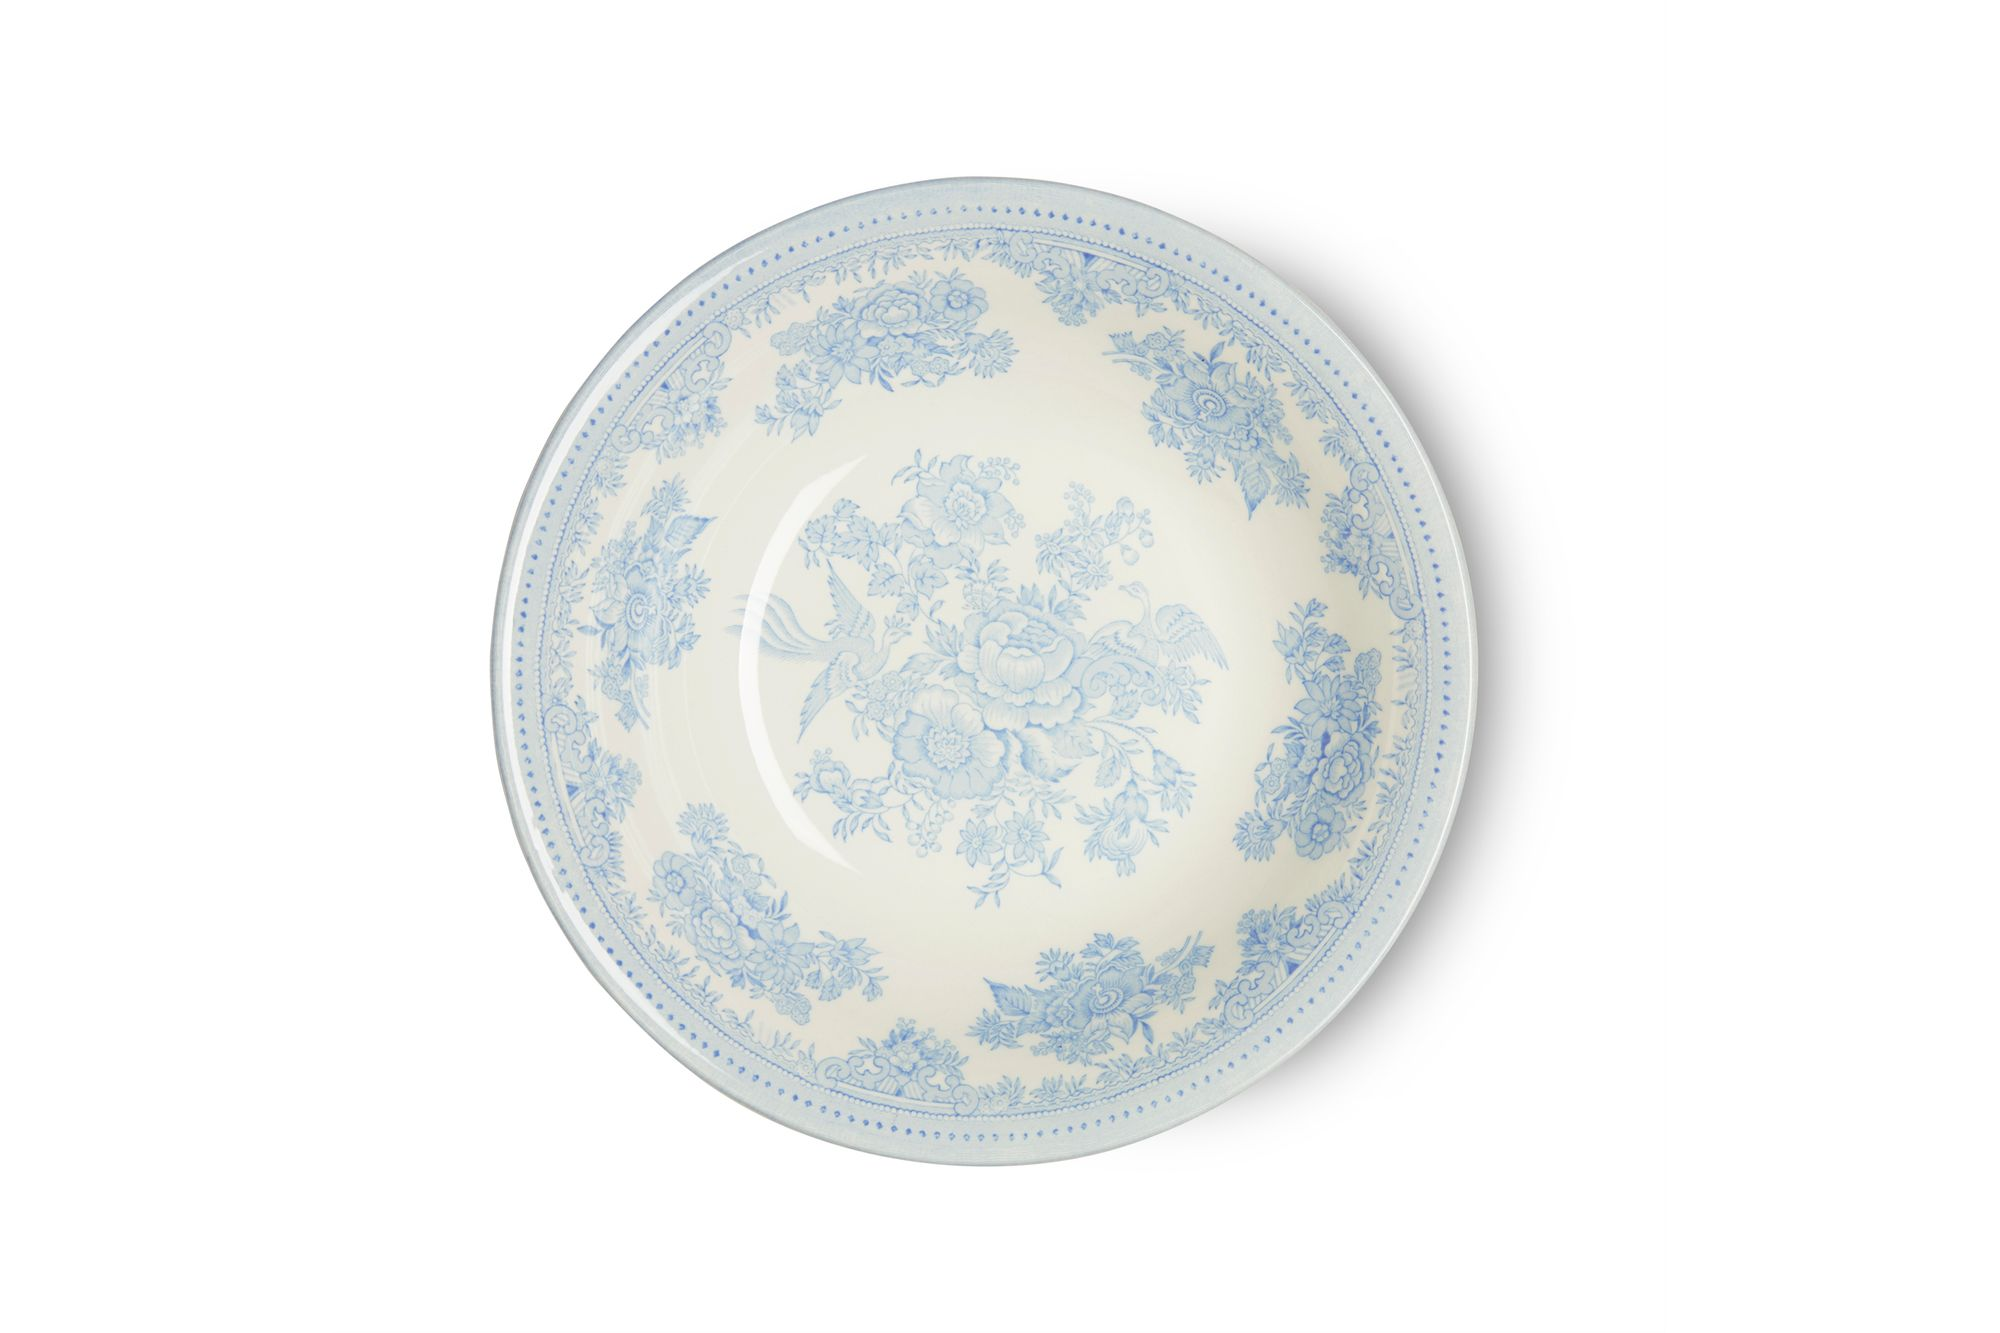 """Burleigh Blue Asiatic Pheasants Soup / Cereal Bowl 8"""" thumb 2"""